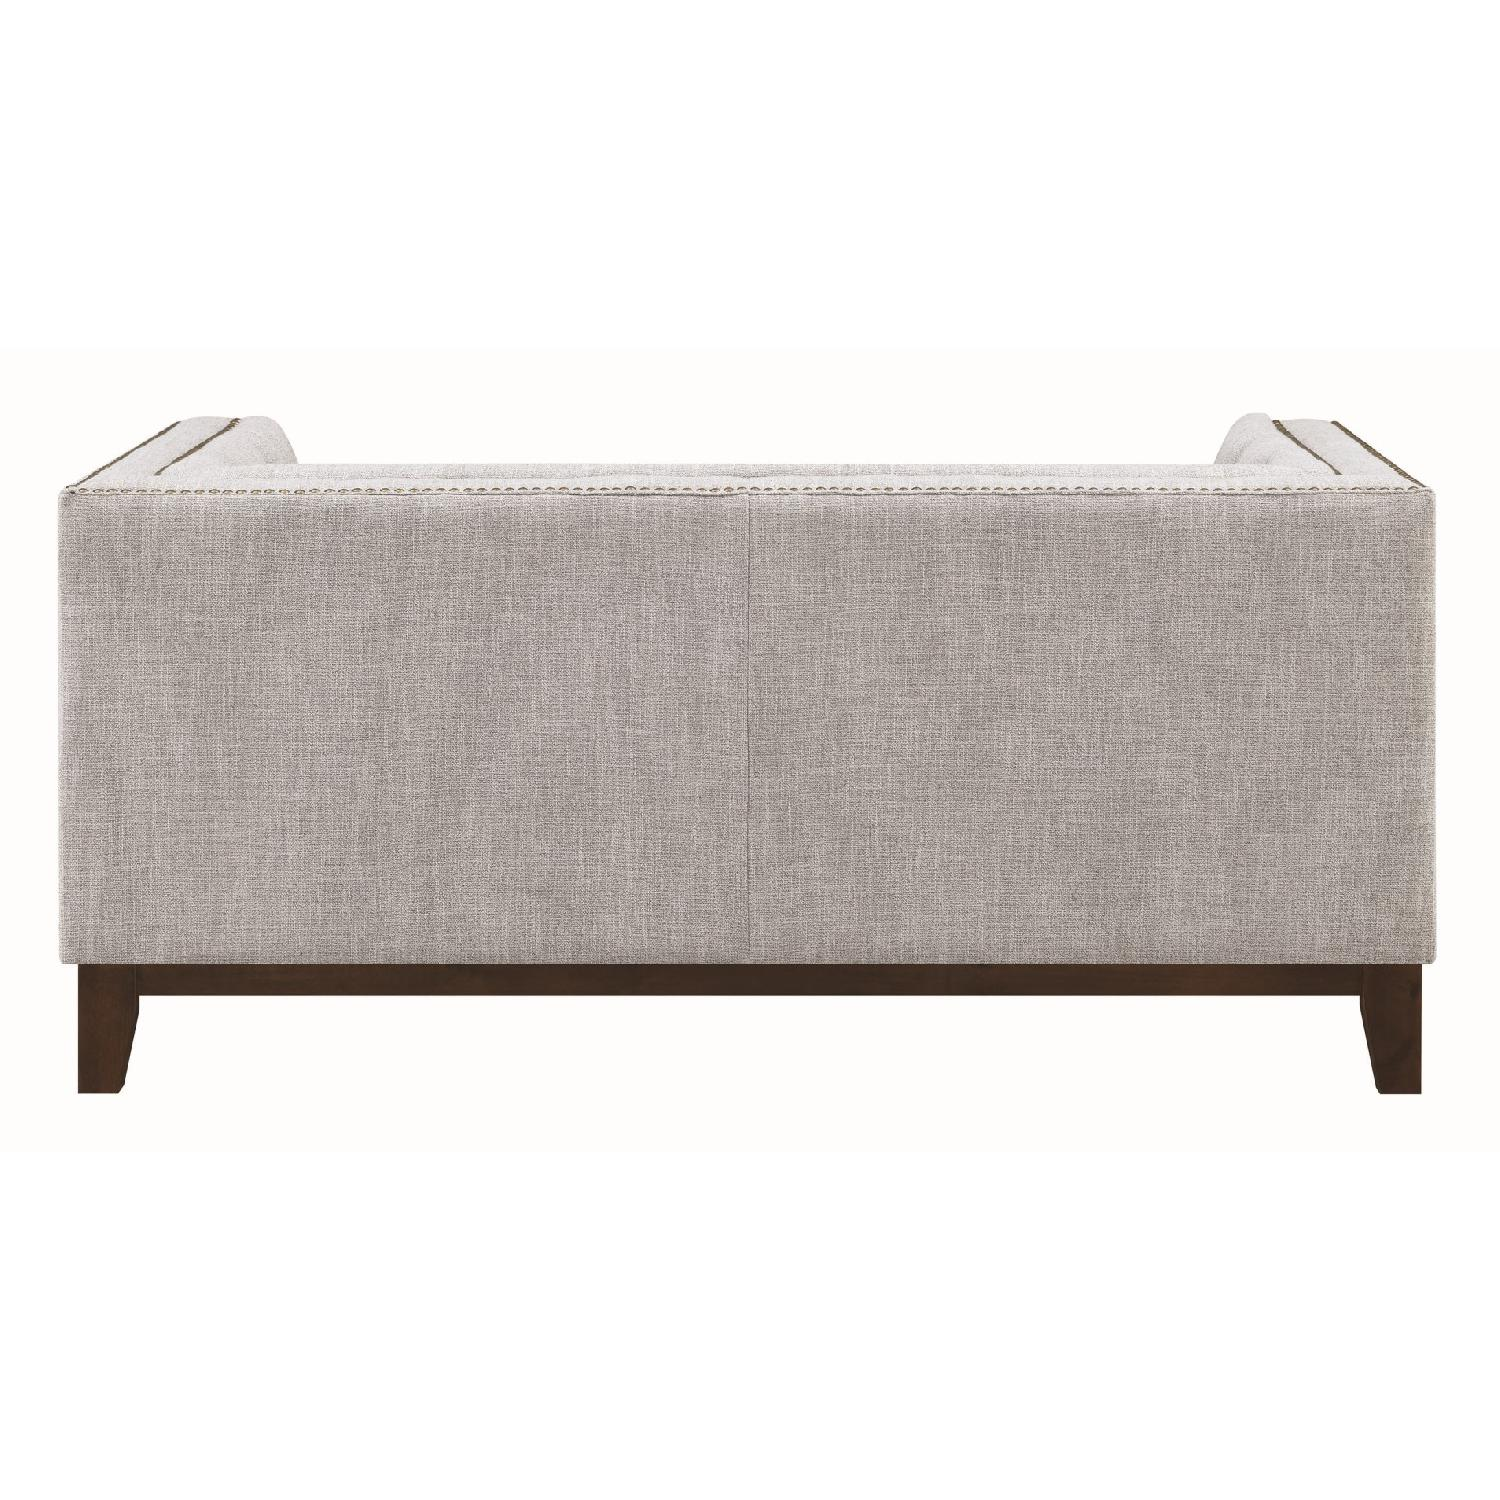 Modern Style Sofa w/ Tufted Buttons & Nailhead Accent - image-10